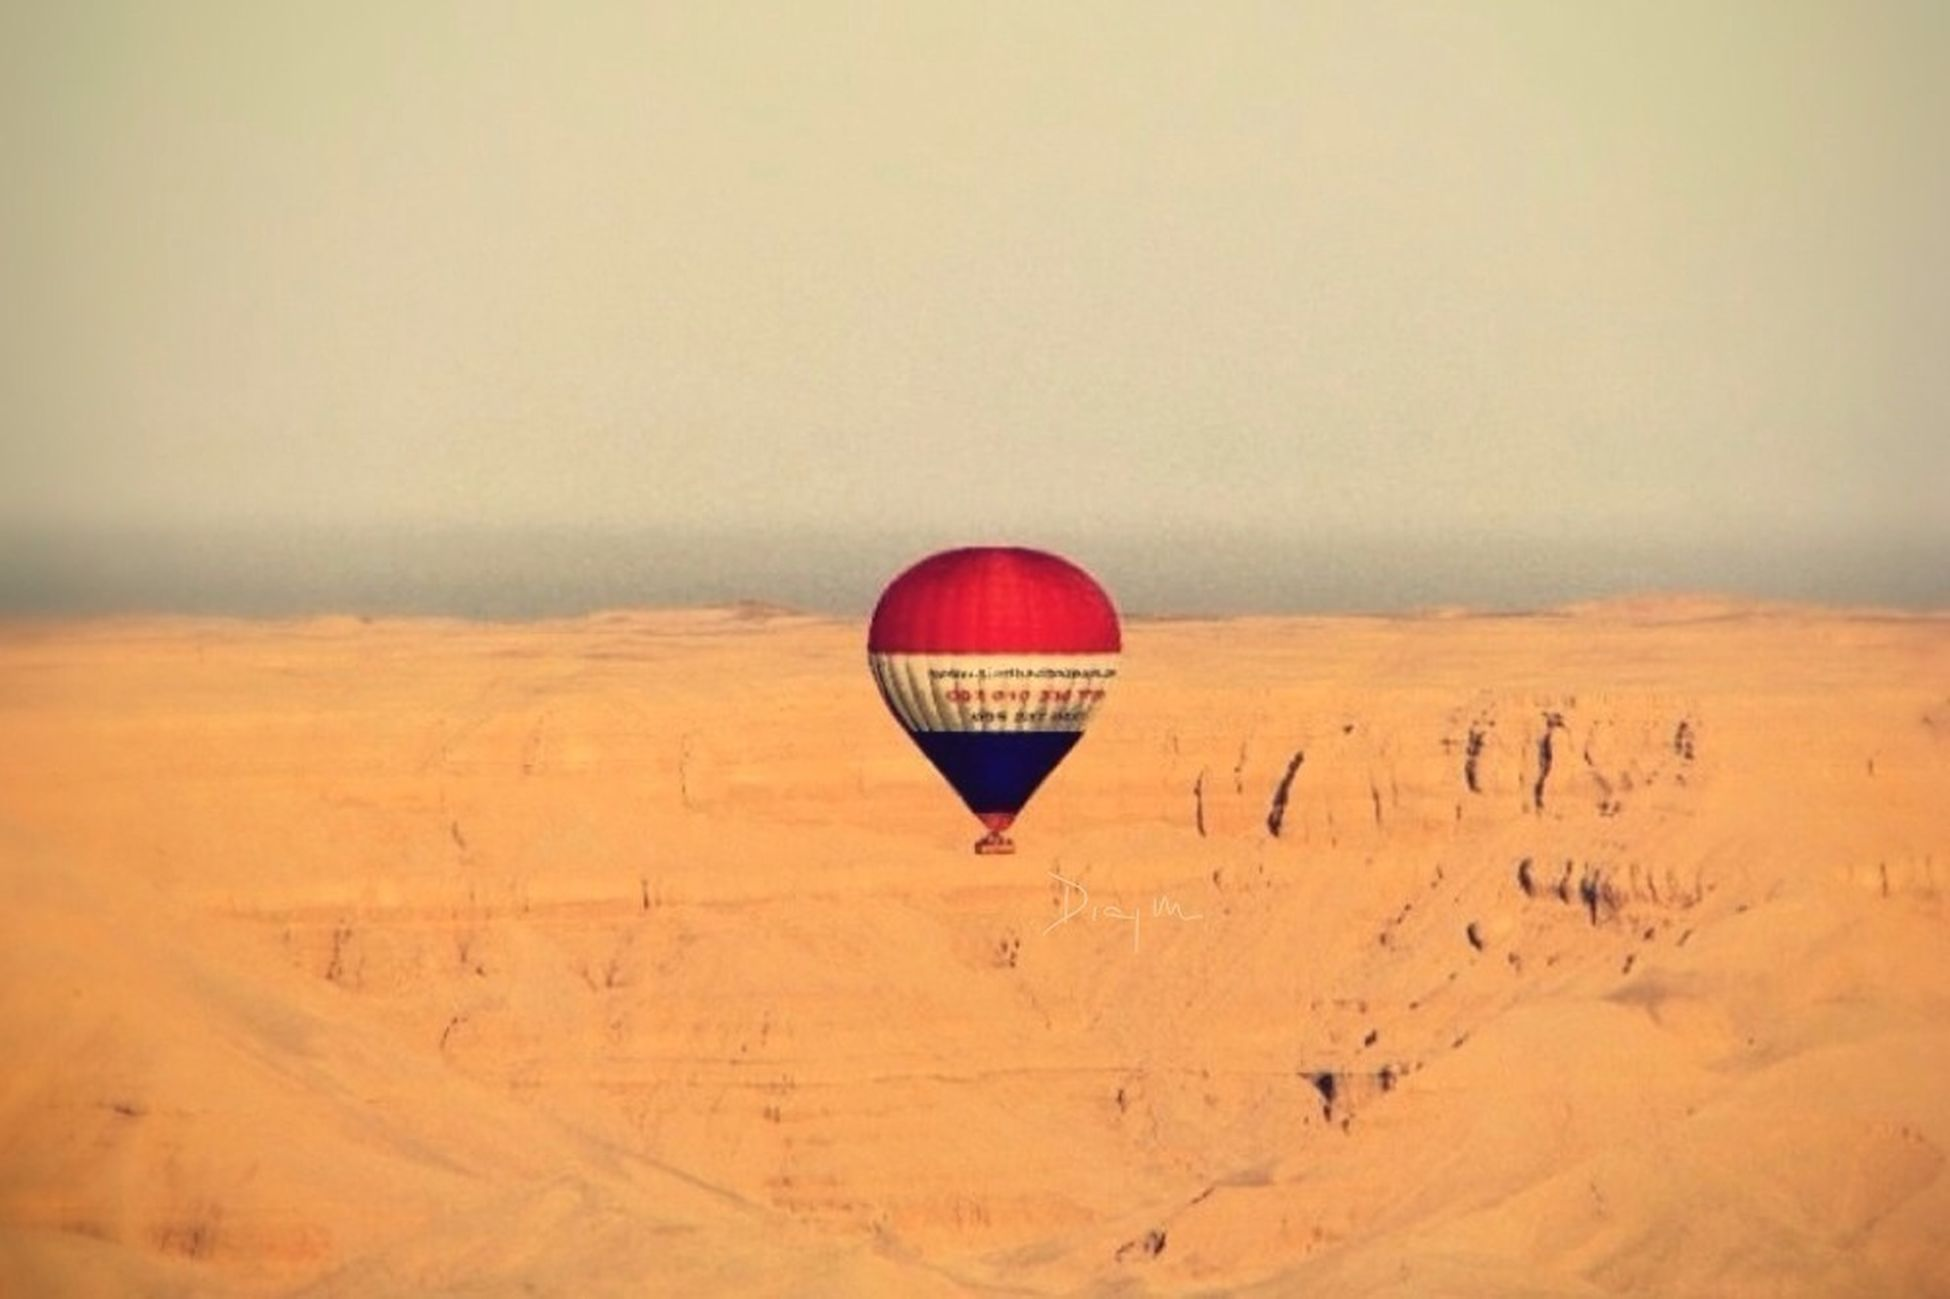 sand, landscape, red, tranquility, beach, tranquil scene, copy space, desert, clear sky, scenics, sky, nature, hot air balloon, arid climate, remote, horizon over land, non-urban scene, beauty in nature, parachute, outdoors